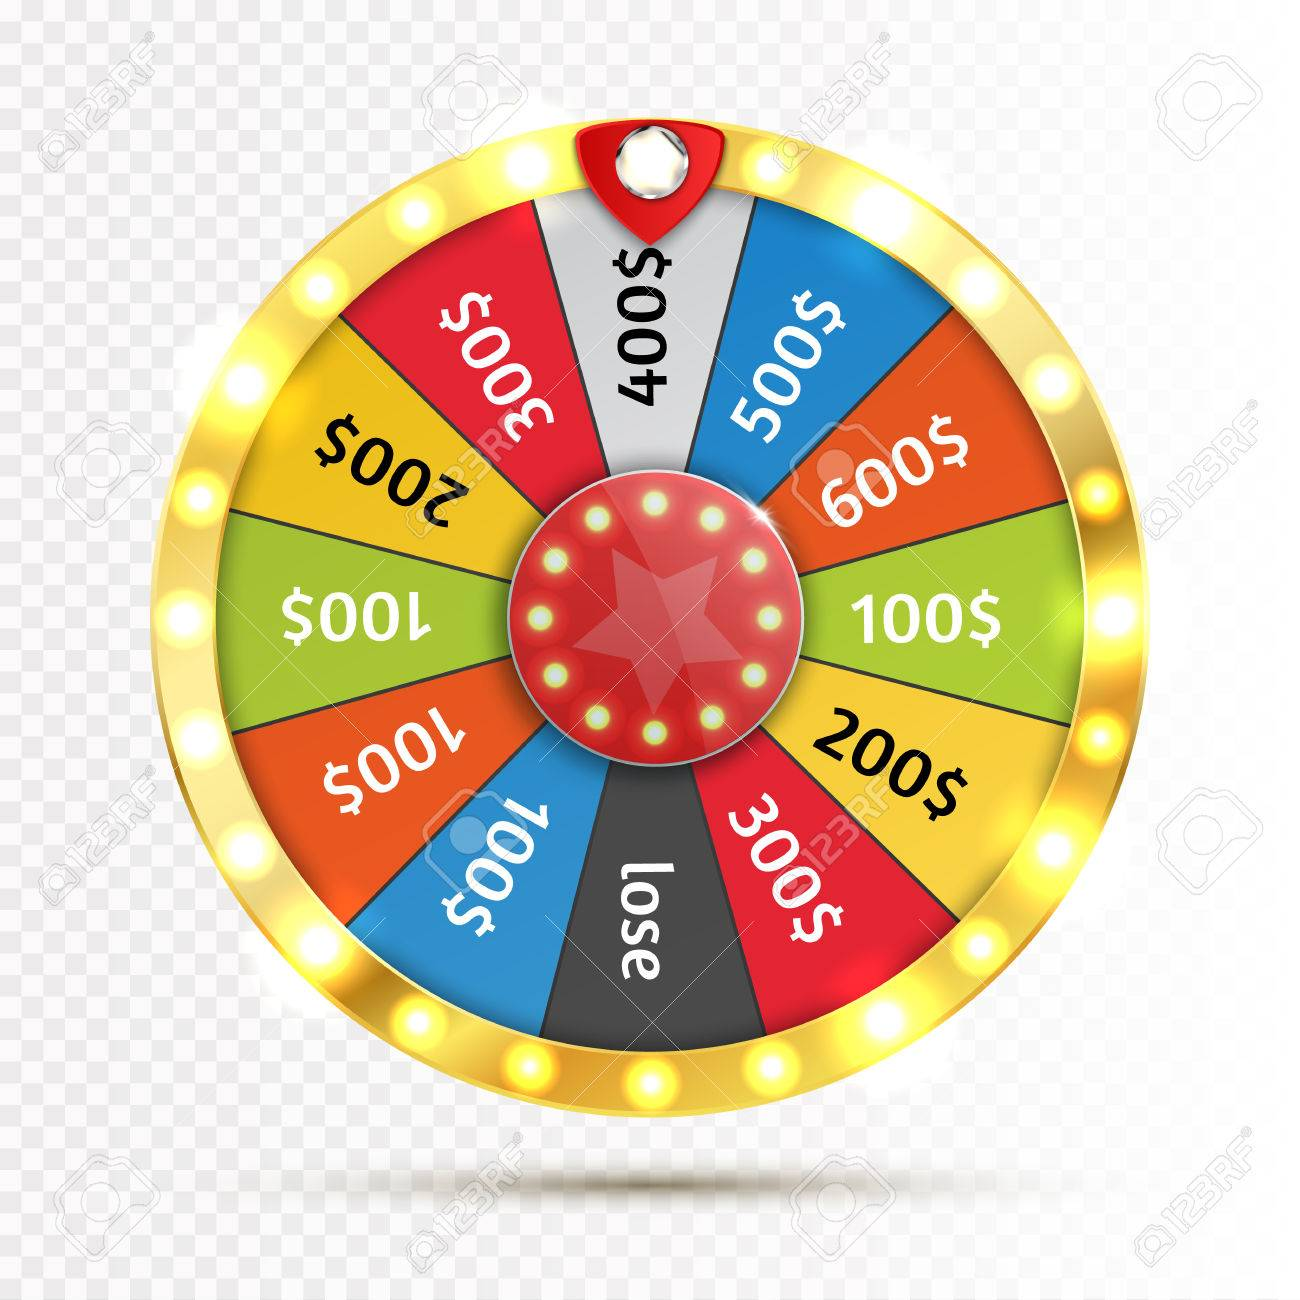 Colorful wheel of luck or fortune infographic. Vector - 70776997